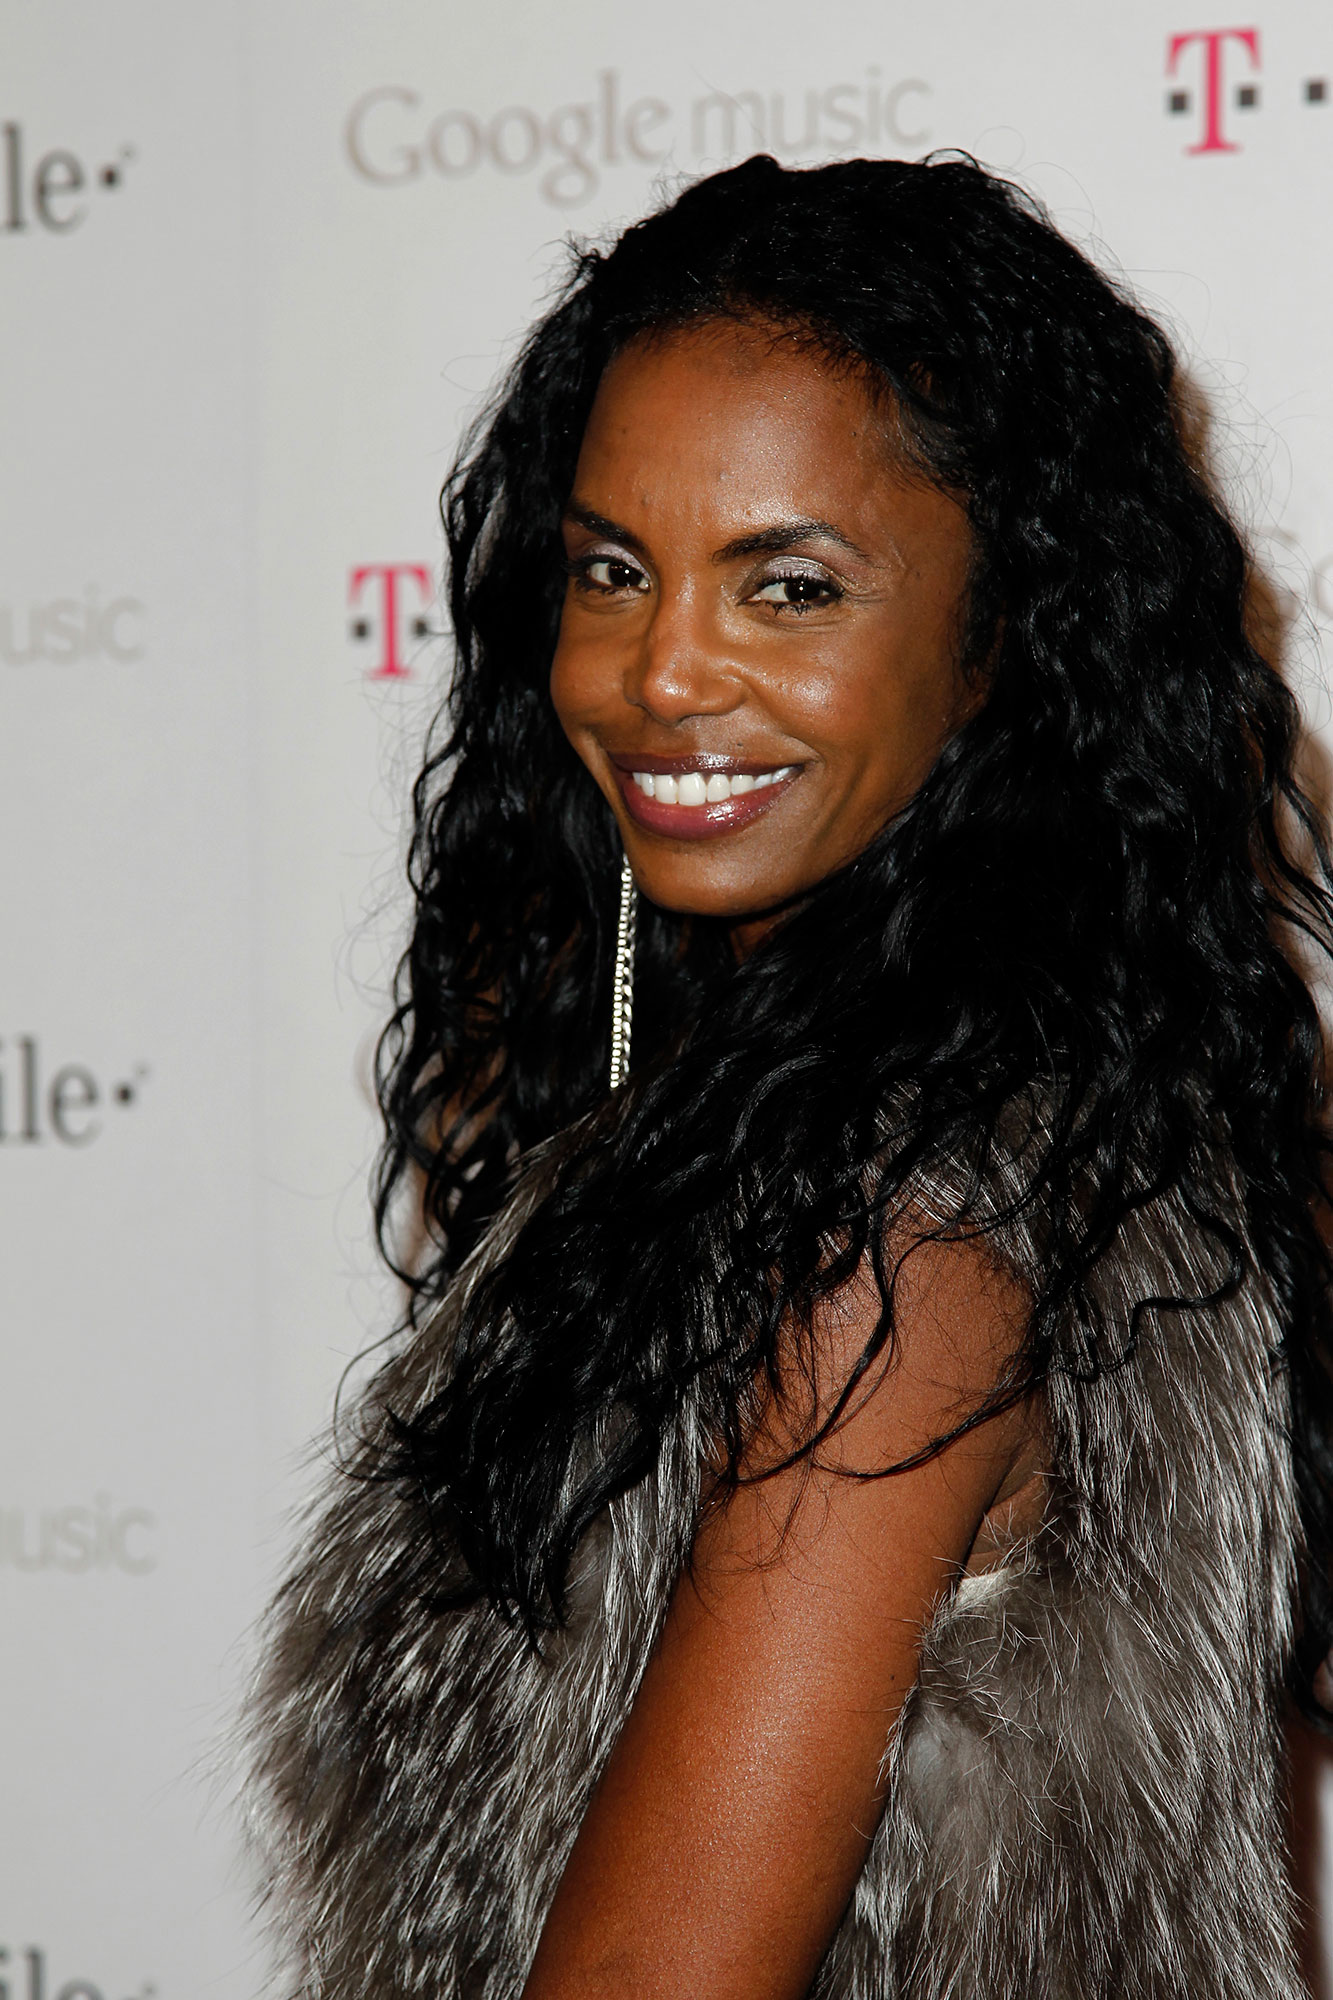 "<div class=""meta image-caption""><div class=""origin-logo origin-image none""><span>none</span></div><span class=""caption-text"">Kim Porter, a model known for her longtime relationship with Sean P. Diddy Combs, died Nov. 15 at age 47. (Matt Sayles, File/AP Photo)</span></div>"